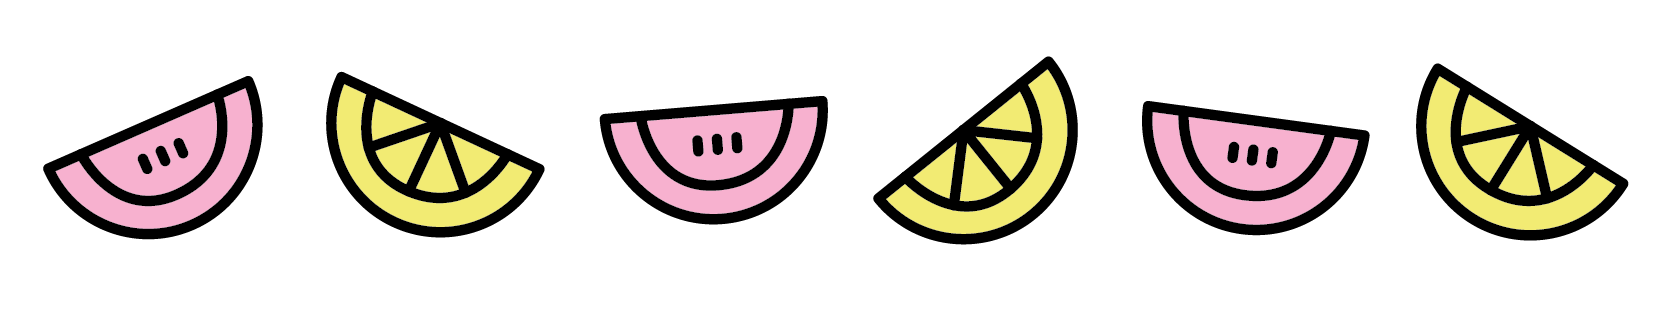 fruit_illustration-05.png